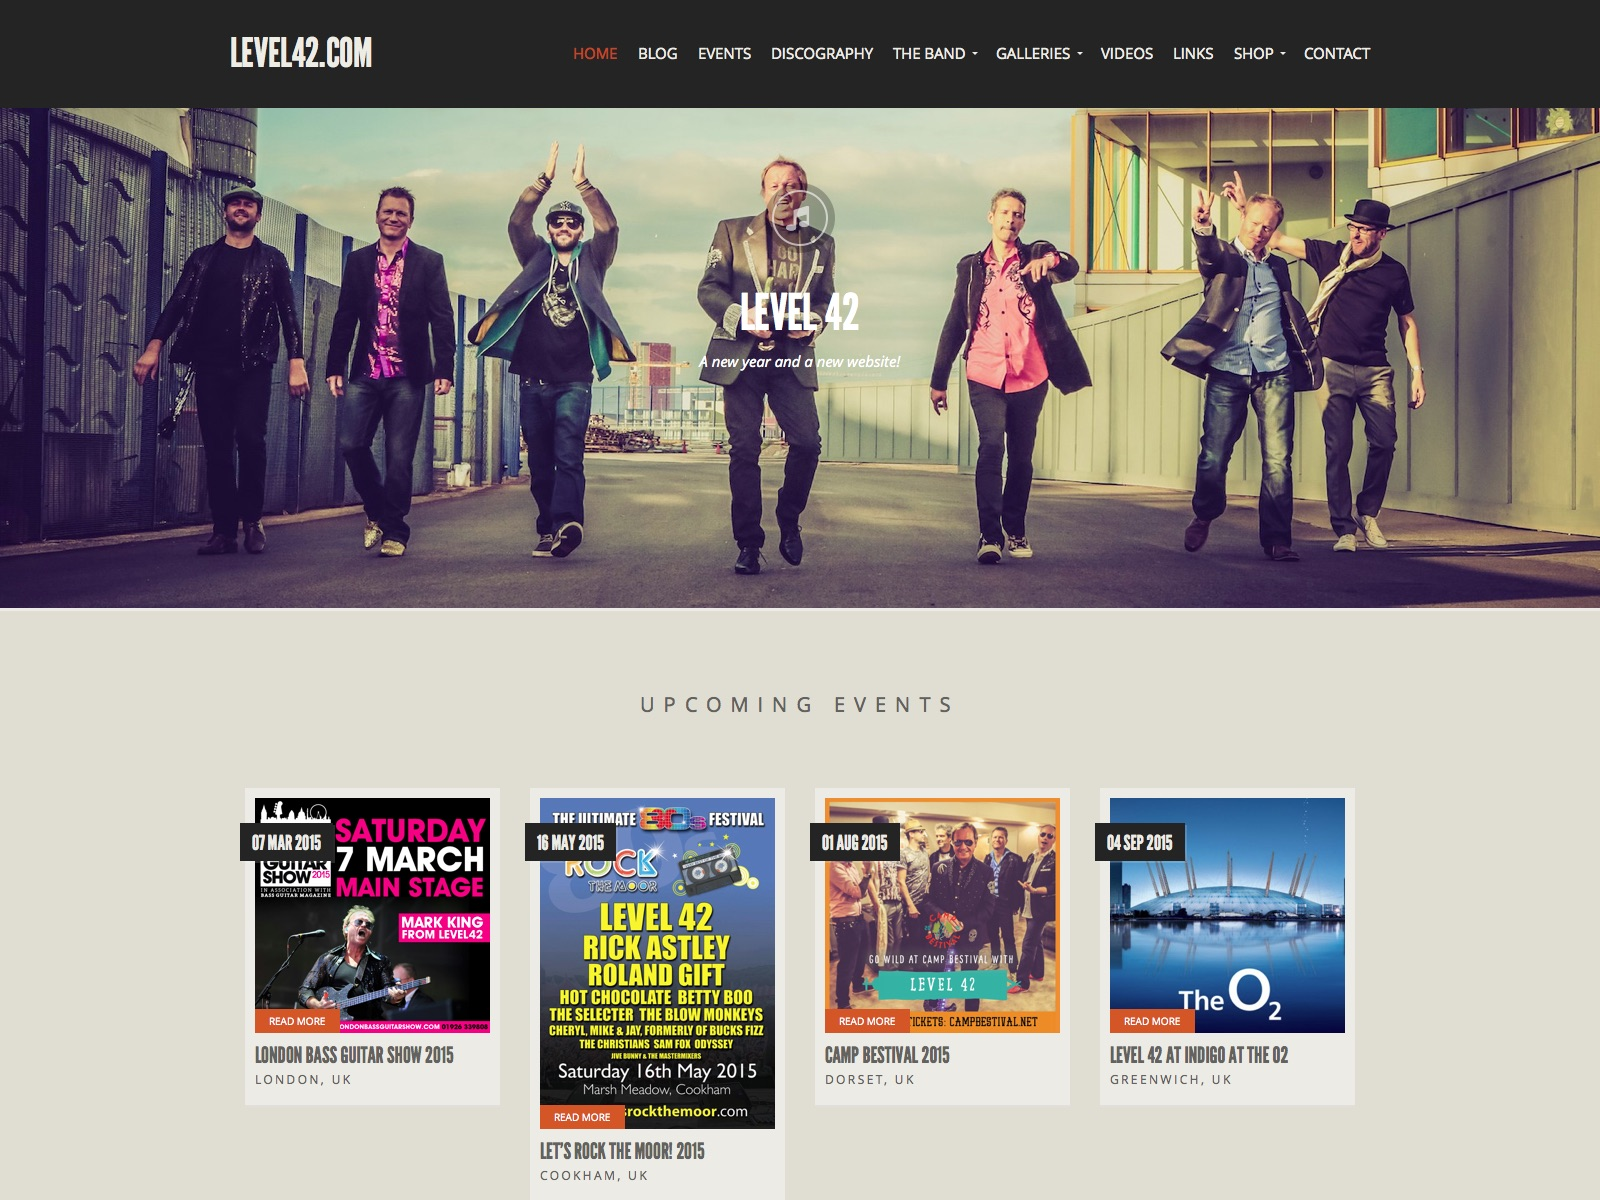 Level42.com | Welcome to the official site of Level 42